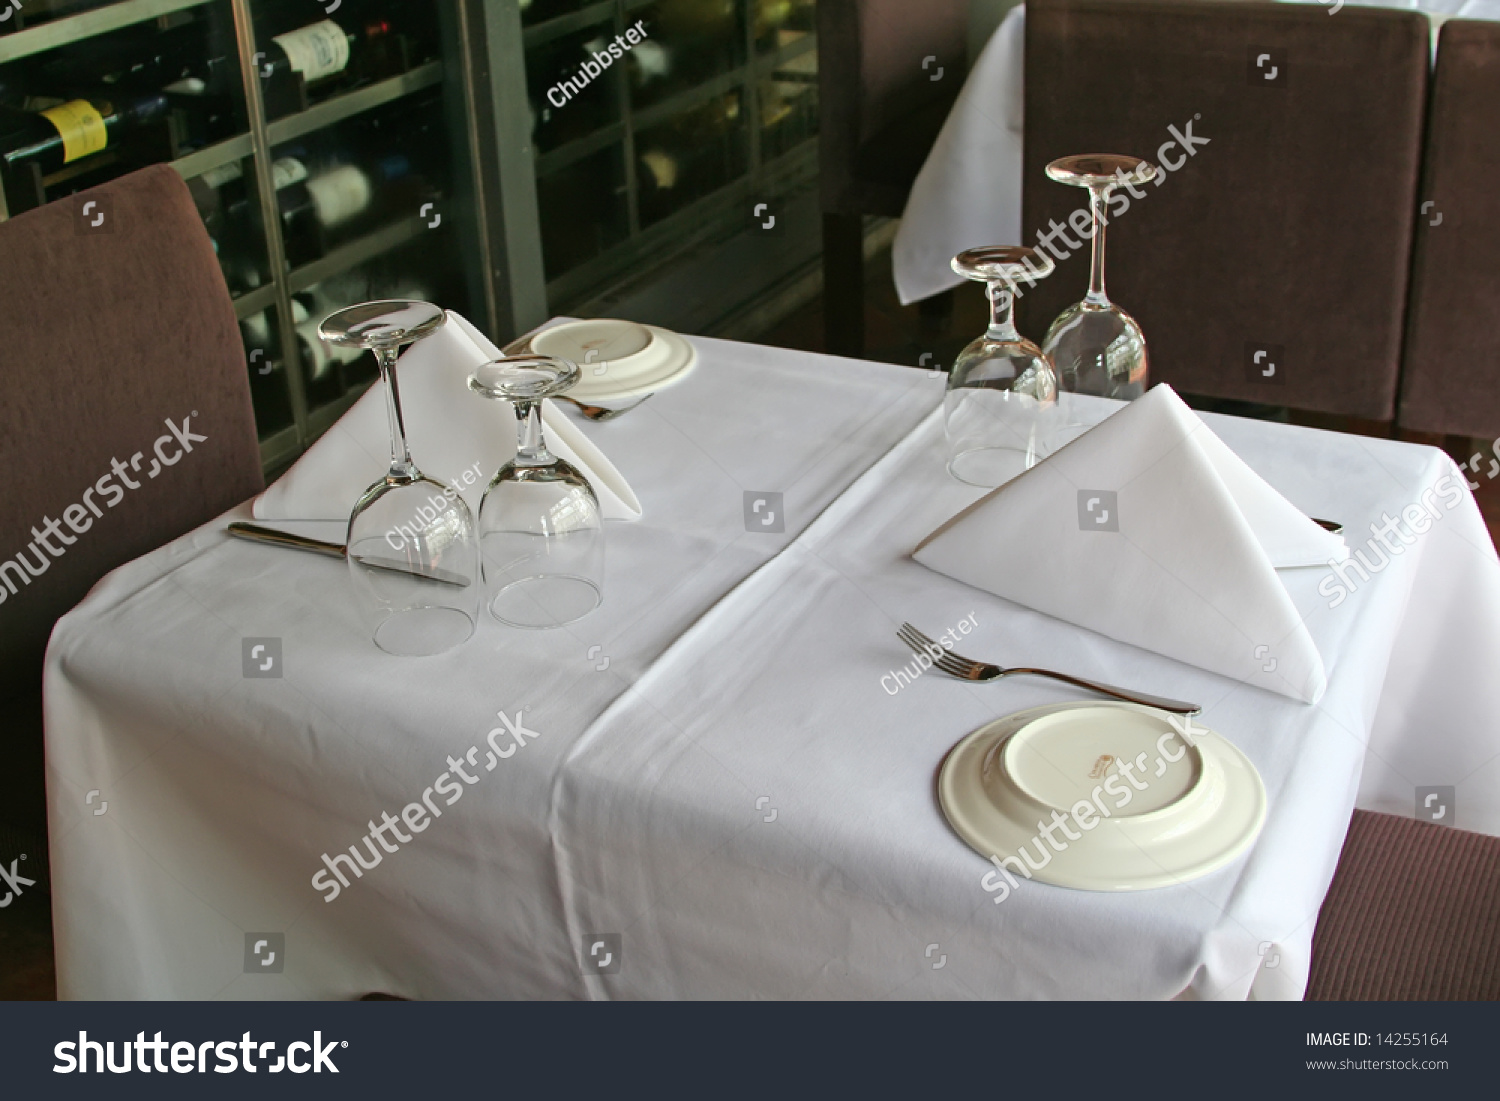 Fancy restaurant table setting - Photo Dining Table Setting Fine Photo Dining Table Setting Fine With View Wine Bottles Background